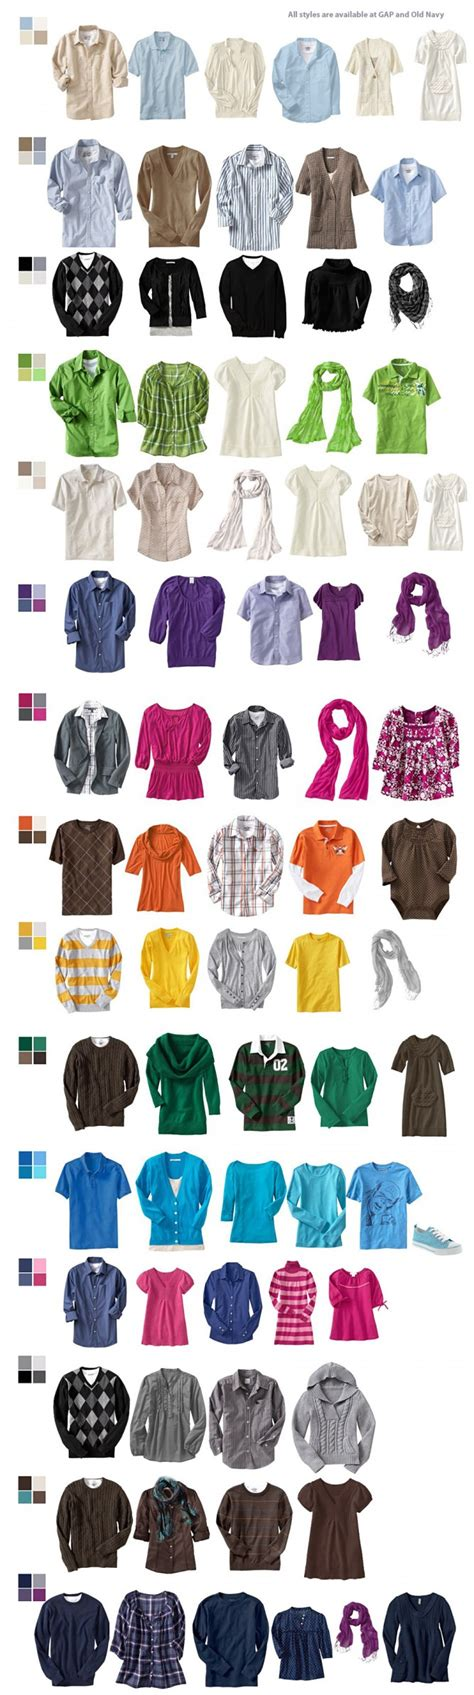 colors for family pictures ideas what to wear for family photos clothing ideas